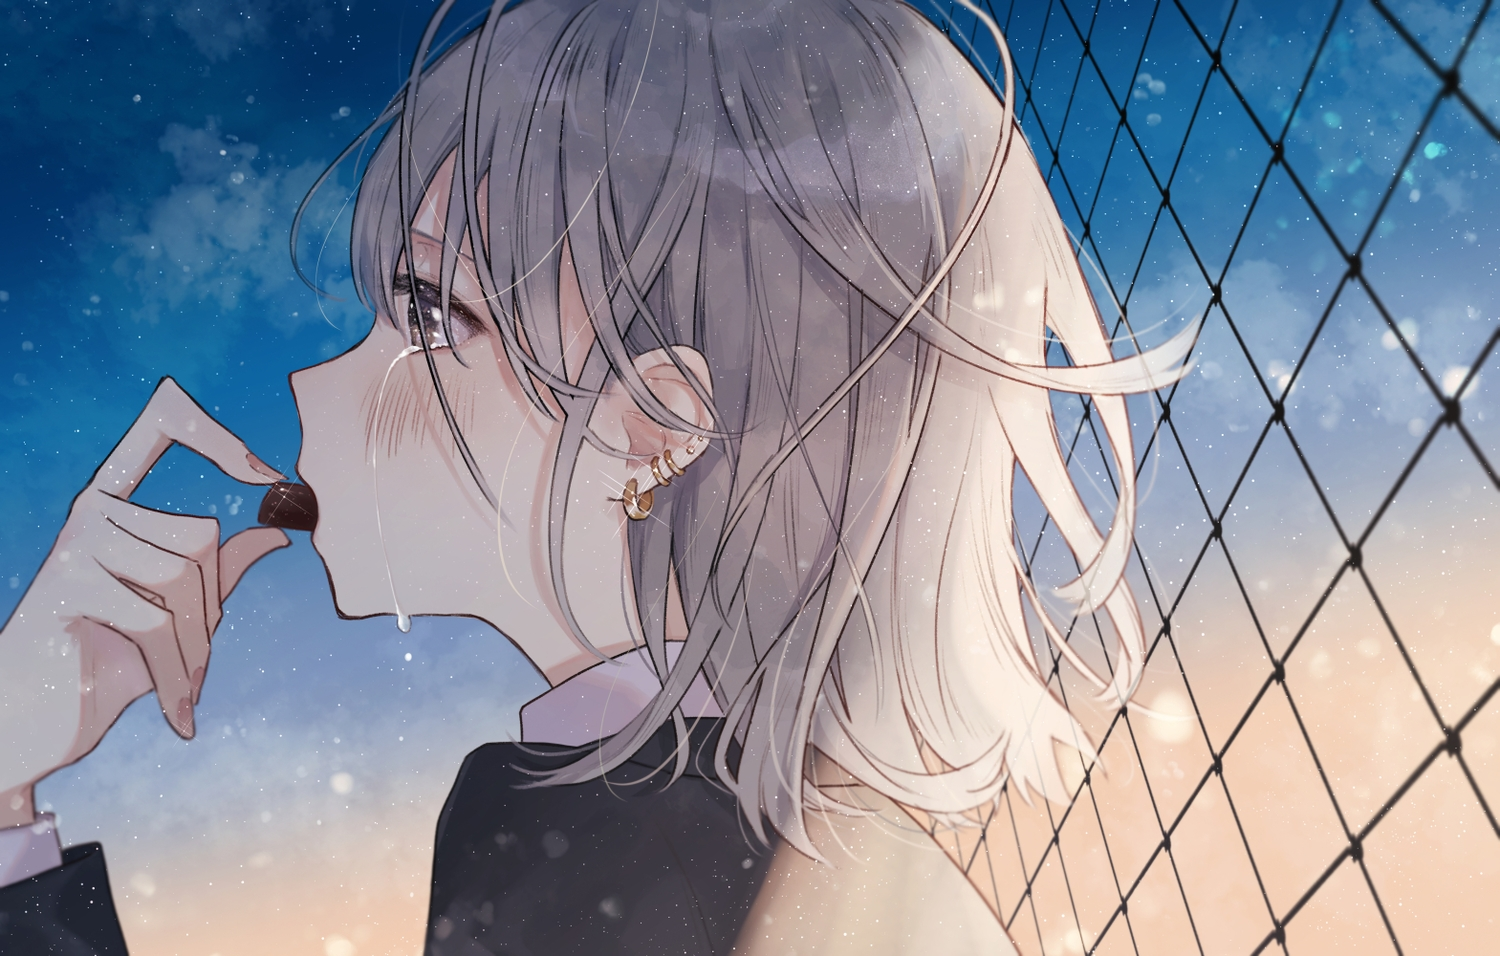 blush brown_eyes candy chocolate clouds crying gray_hair necojishi night original short_hair sky stars tears valentine